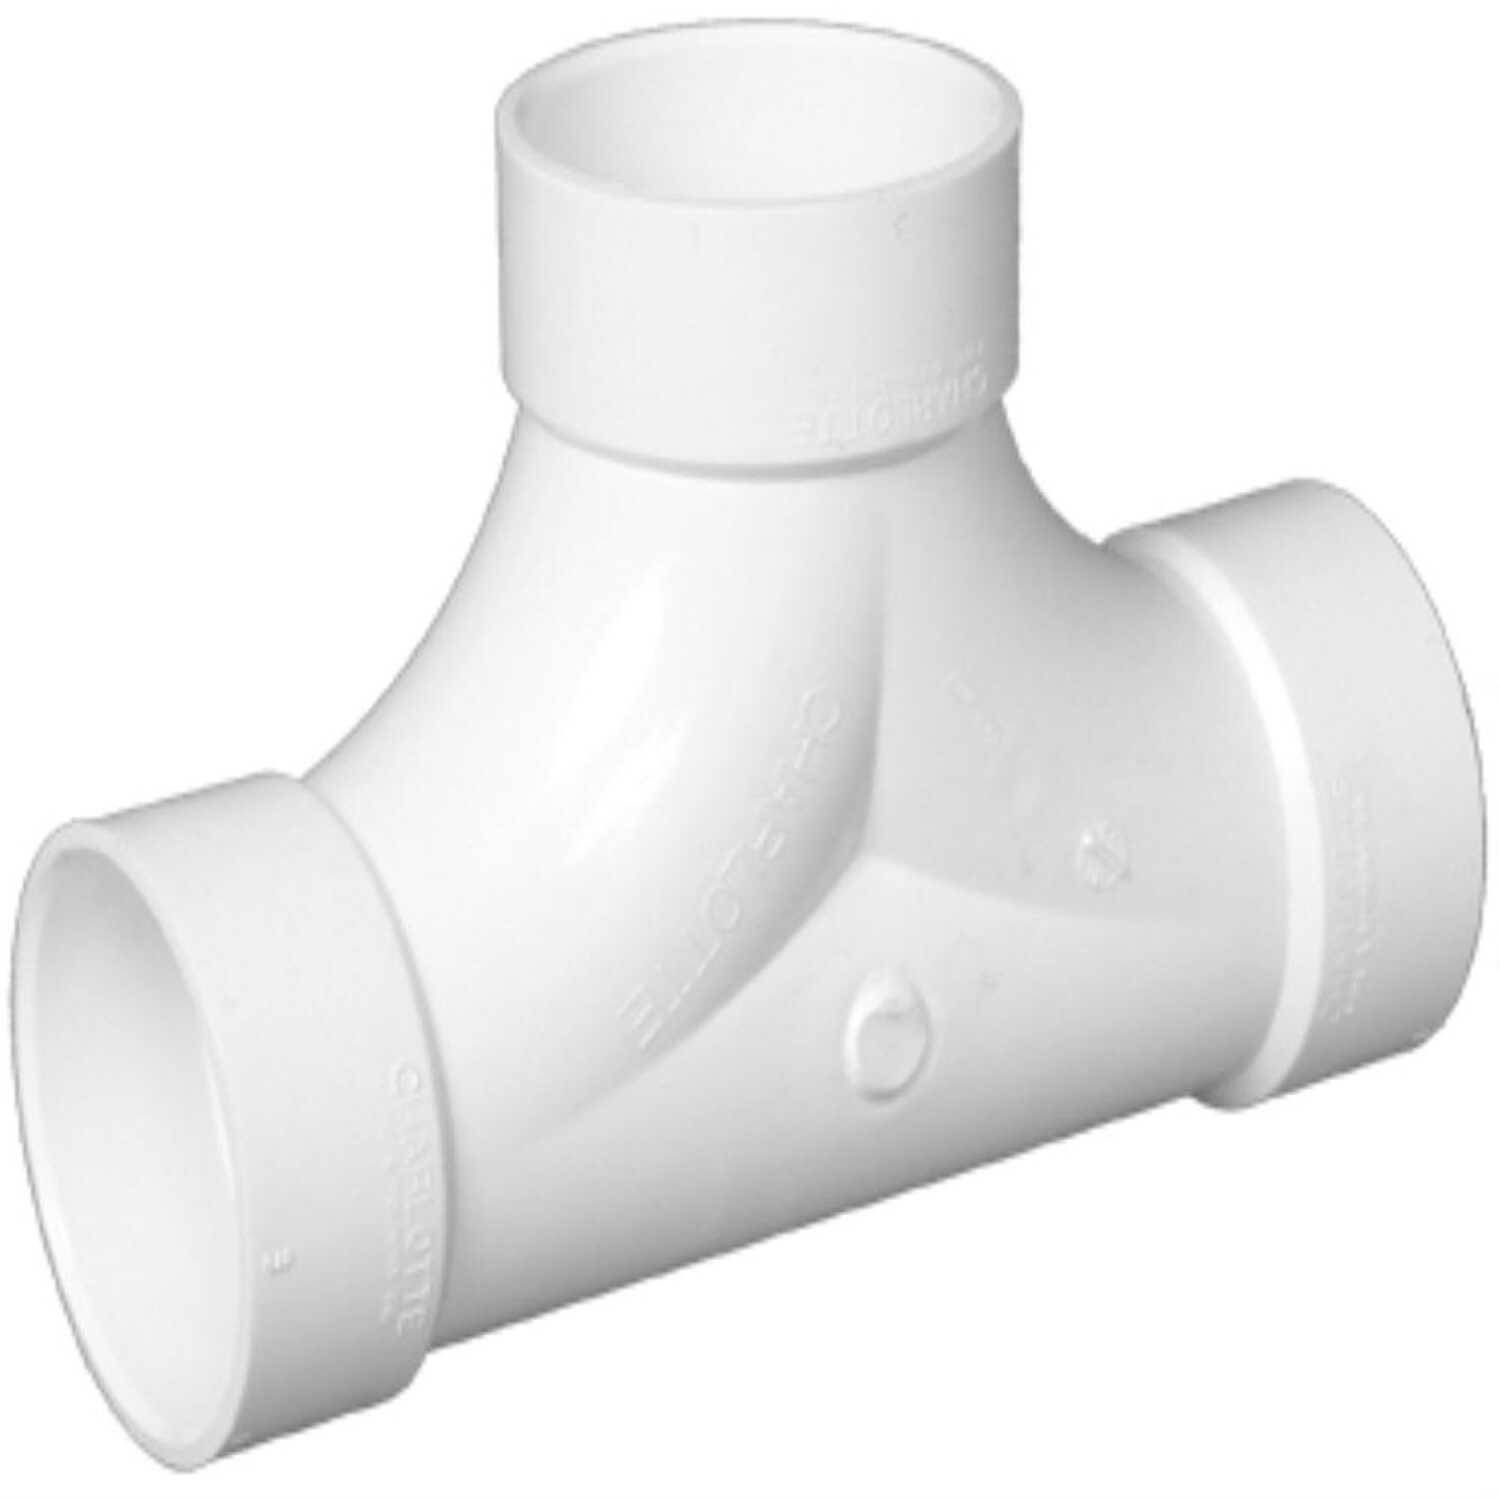 Charlotte Pipe  Schedule 40  4 in. Hub   x 4 in. Dia. Hub  PVC  2-Way Cleanout Tee